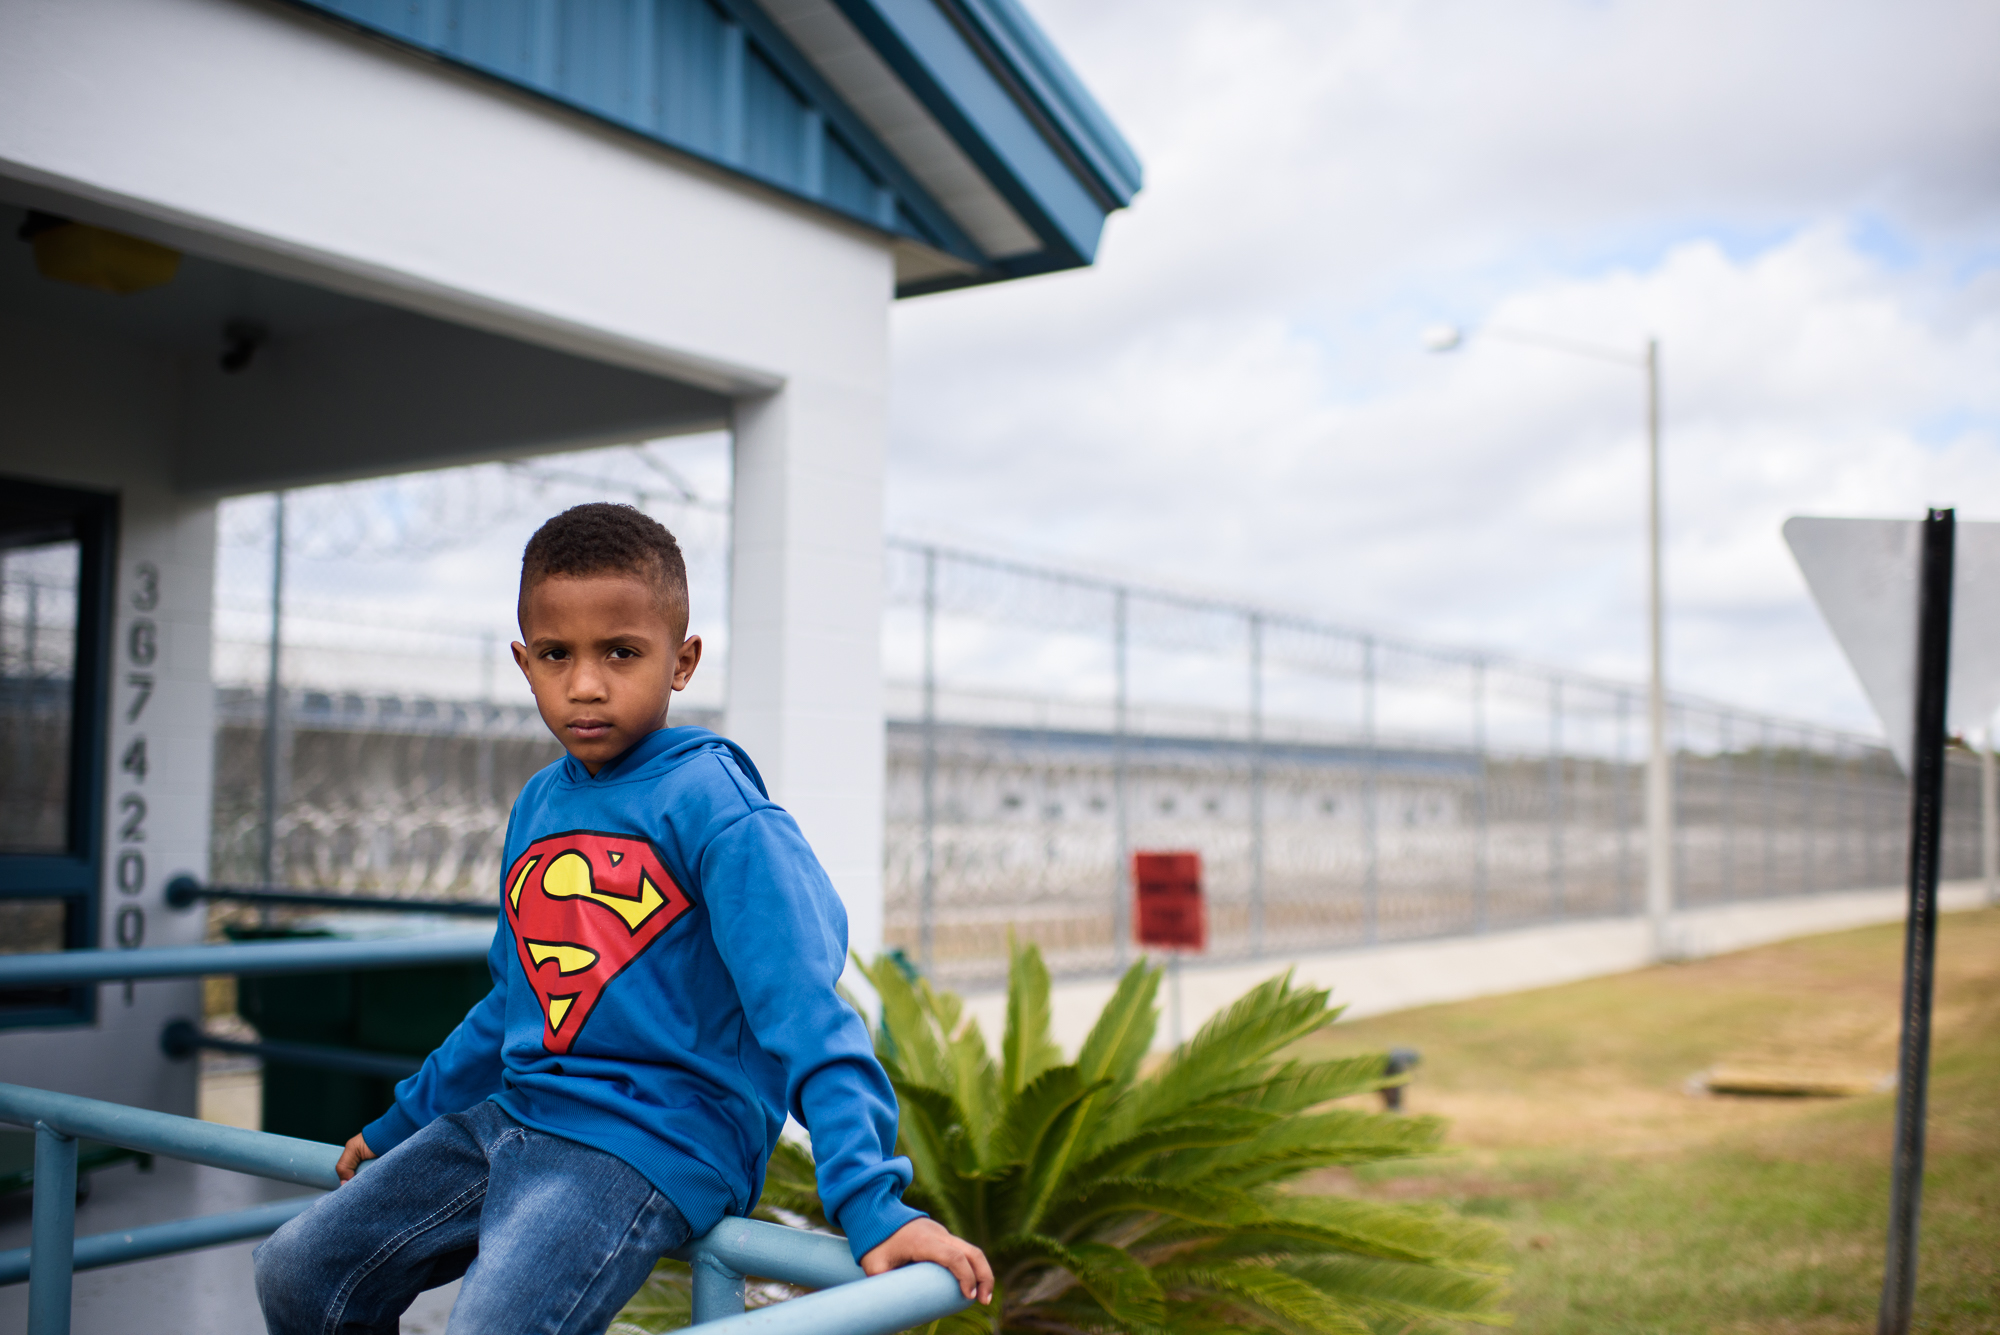 A boy sits outside the entrance of Lowell Correctional Institution in Ocala, Florida before visiting his mom.